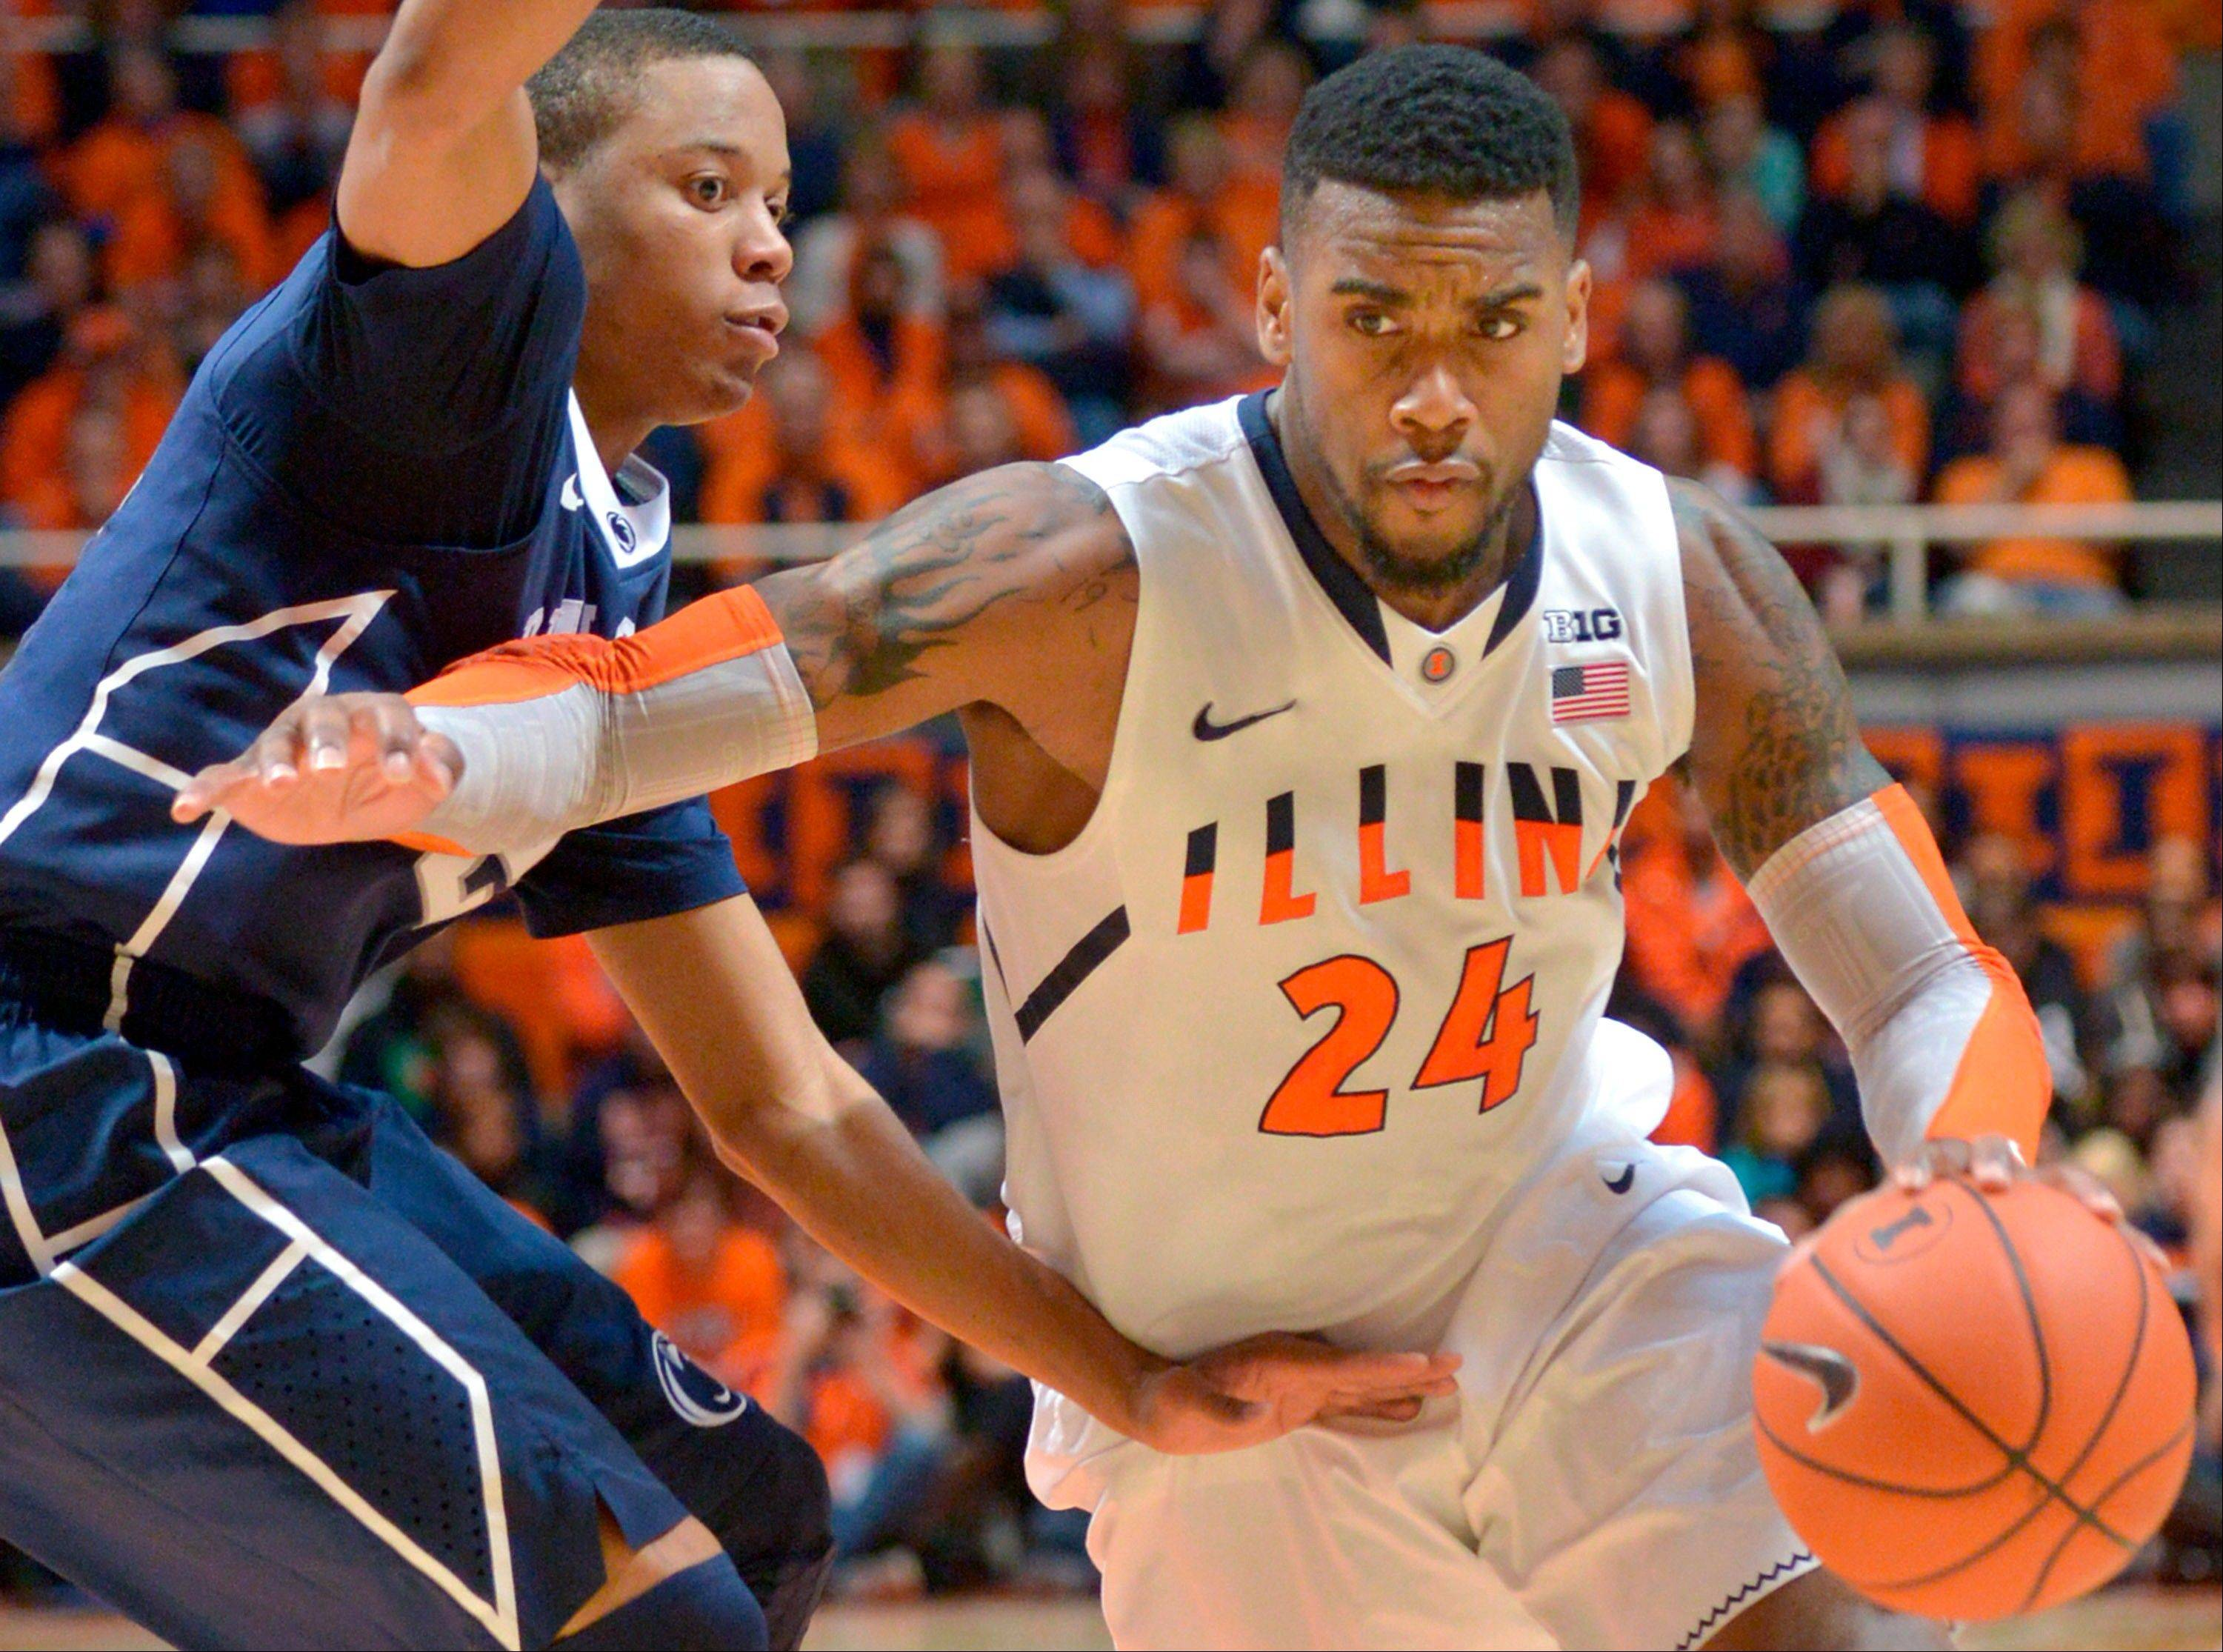 Illinois' Rayvonte Rice (24) drives past Penn State's Tim Frazier during an NCAA college basketball game at the State Farm Center in Champaign, Ill., on Saturday, Jan. 4, 2014. (AP Photo/Robin Scholz)